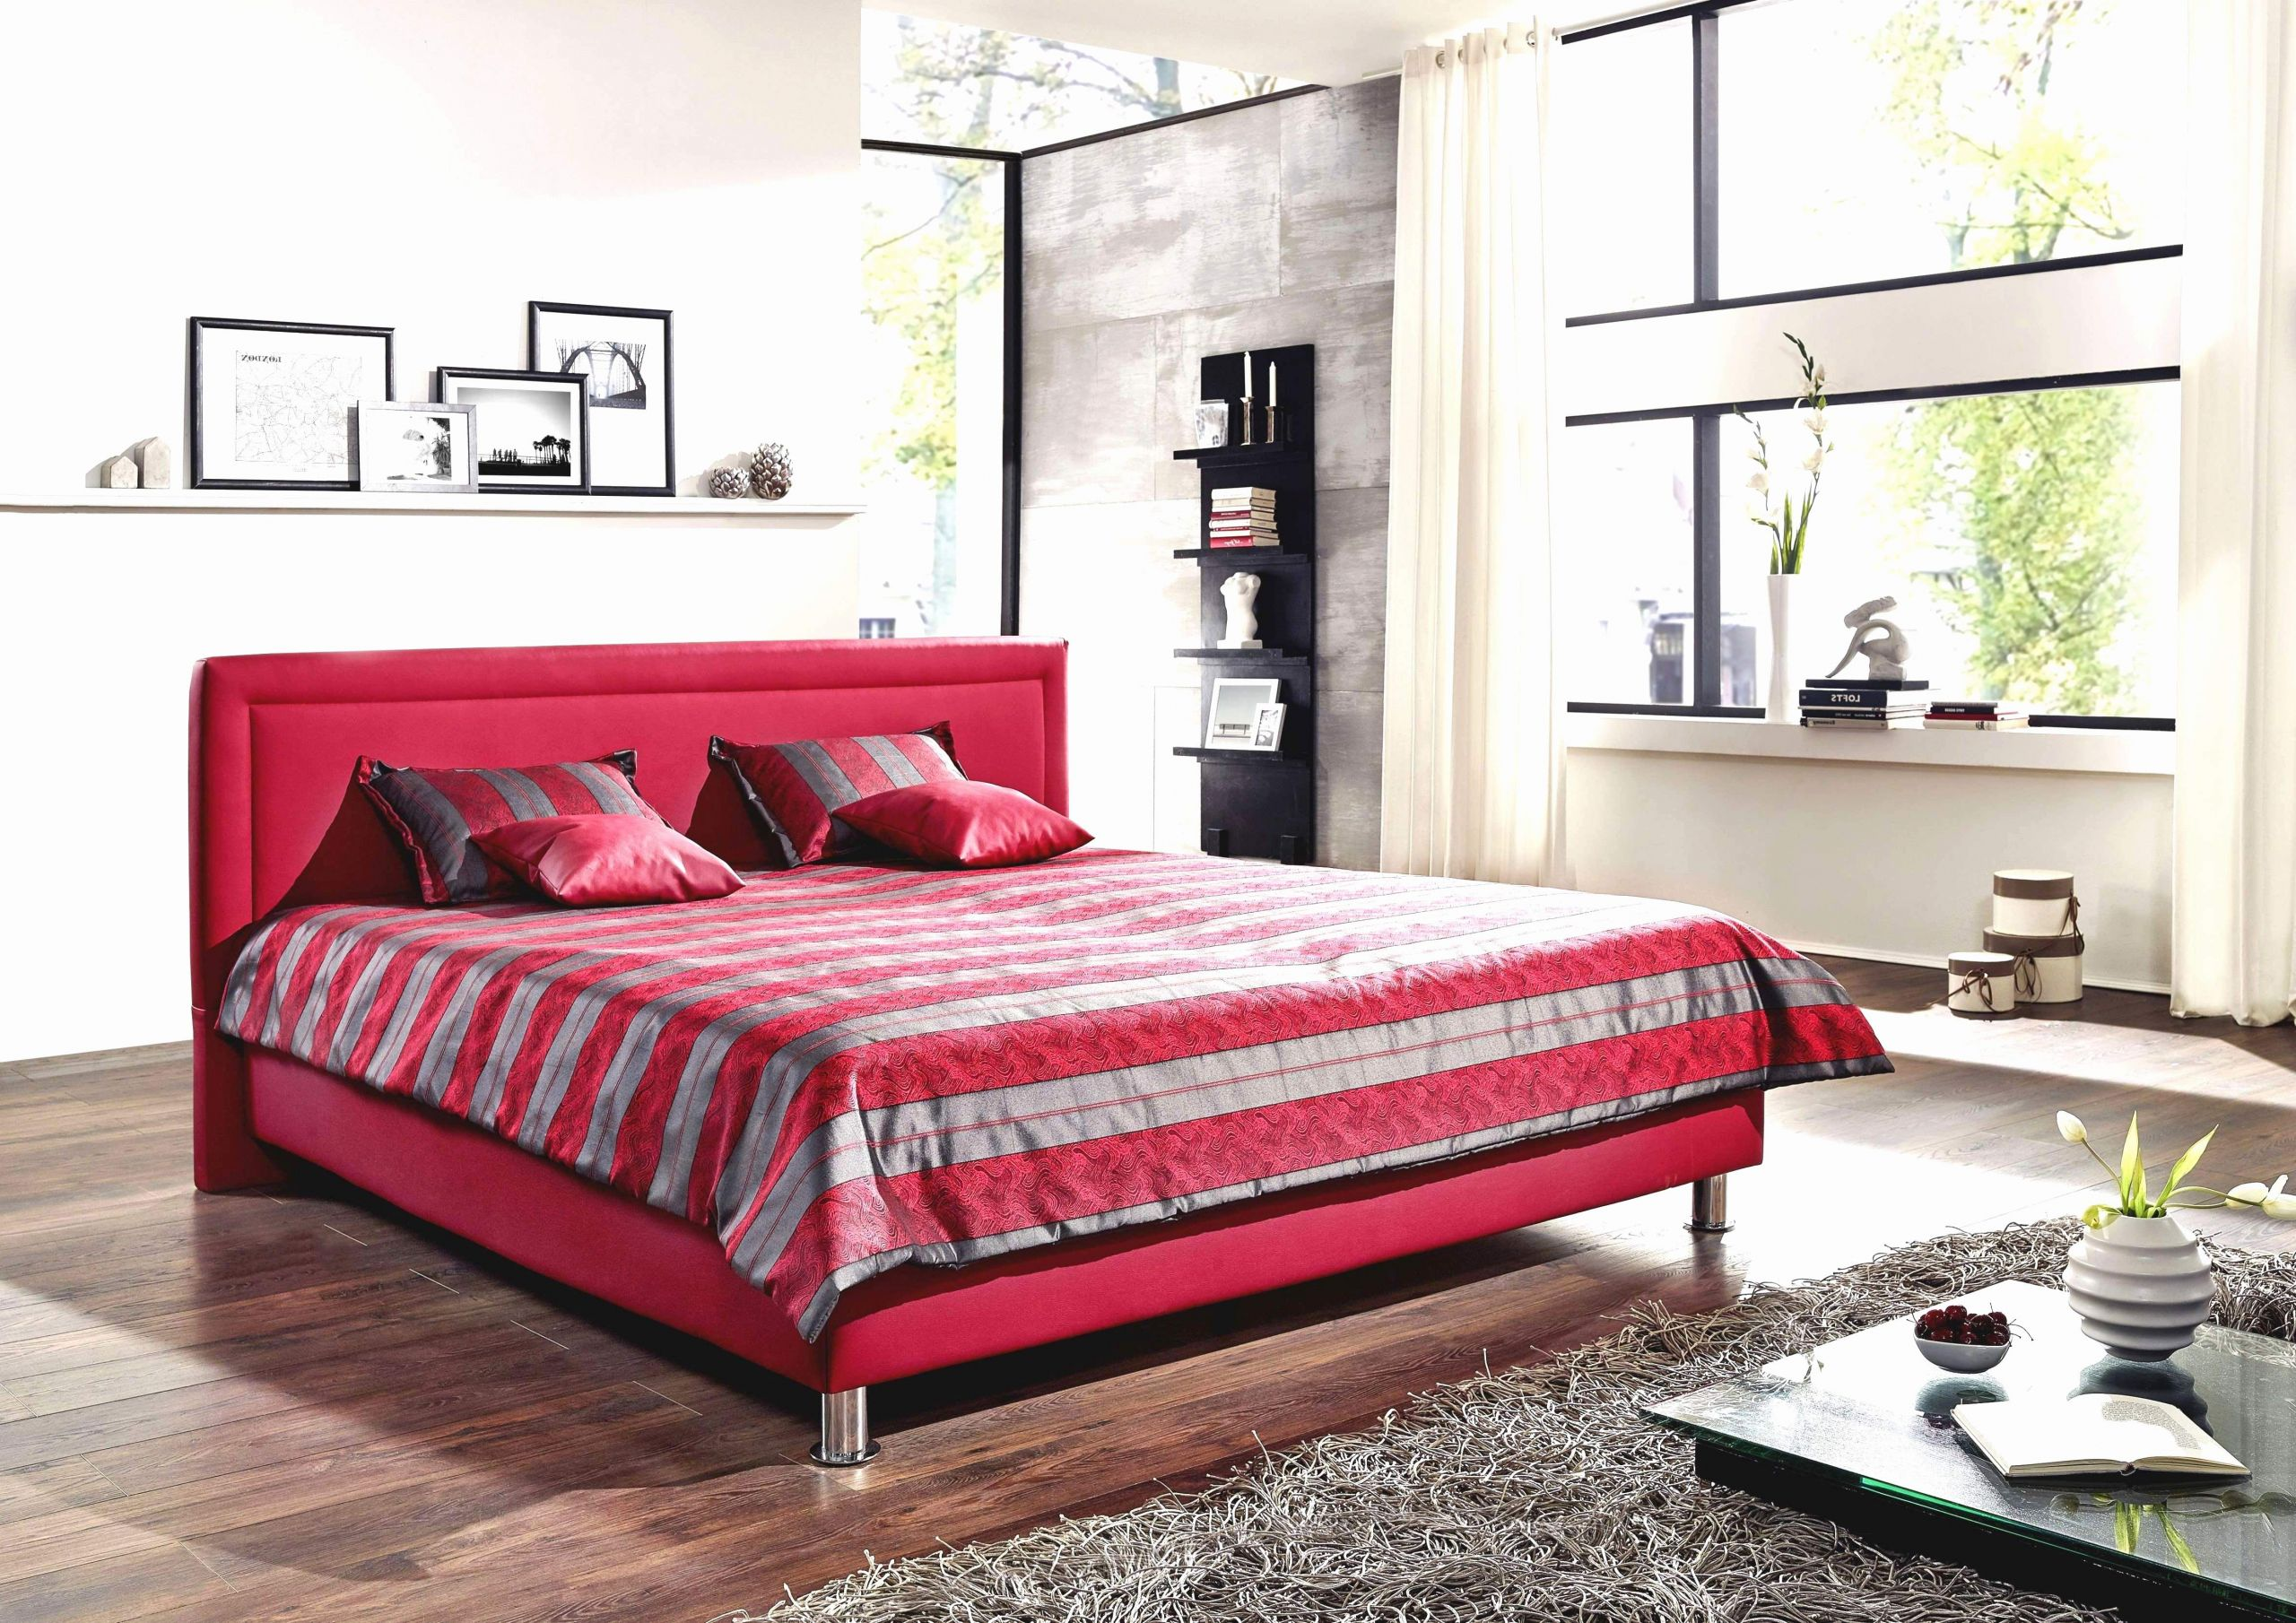 ikea 140c bett inspirierend rot iron bed frame awesome ucerehhd of couch bett ikea